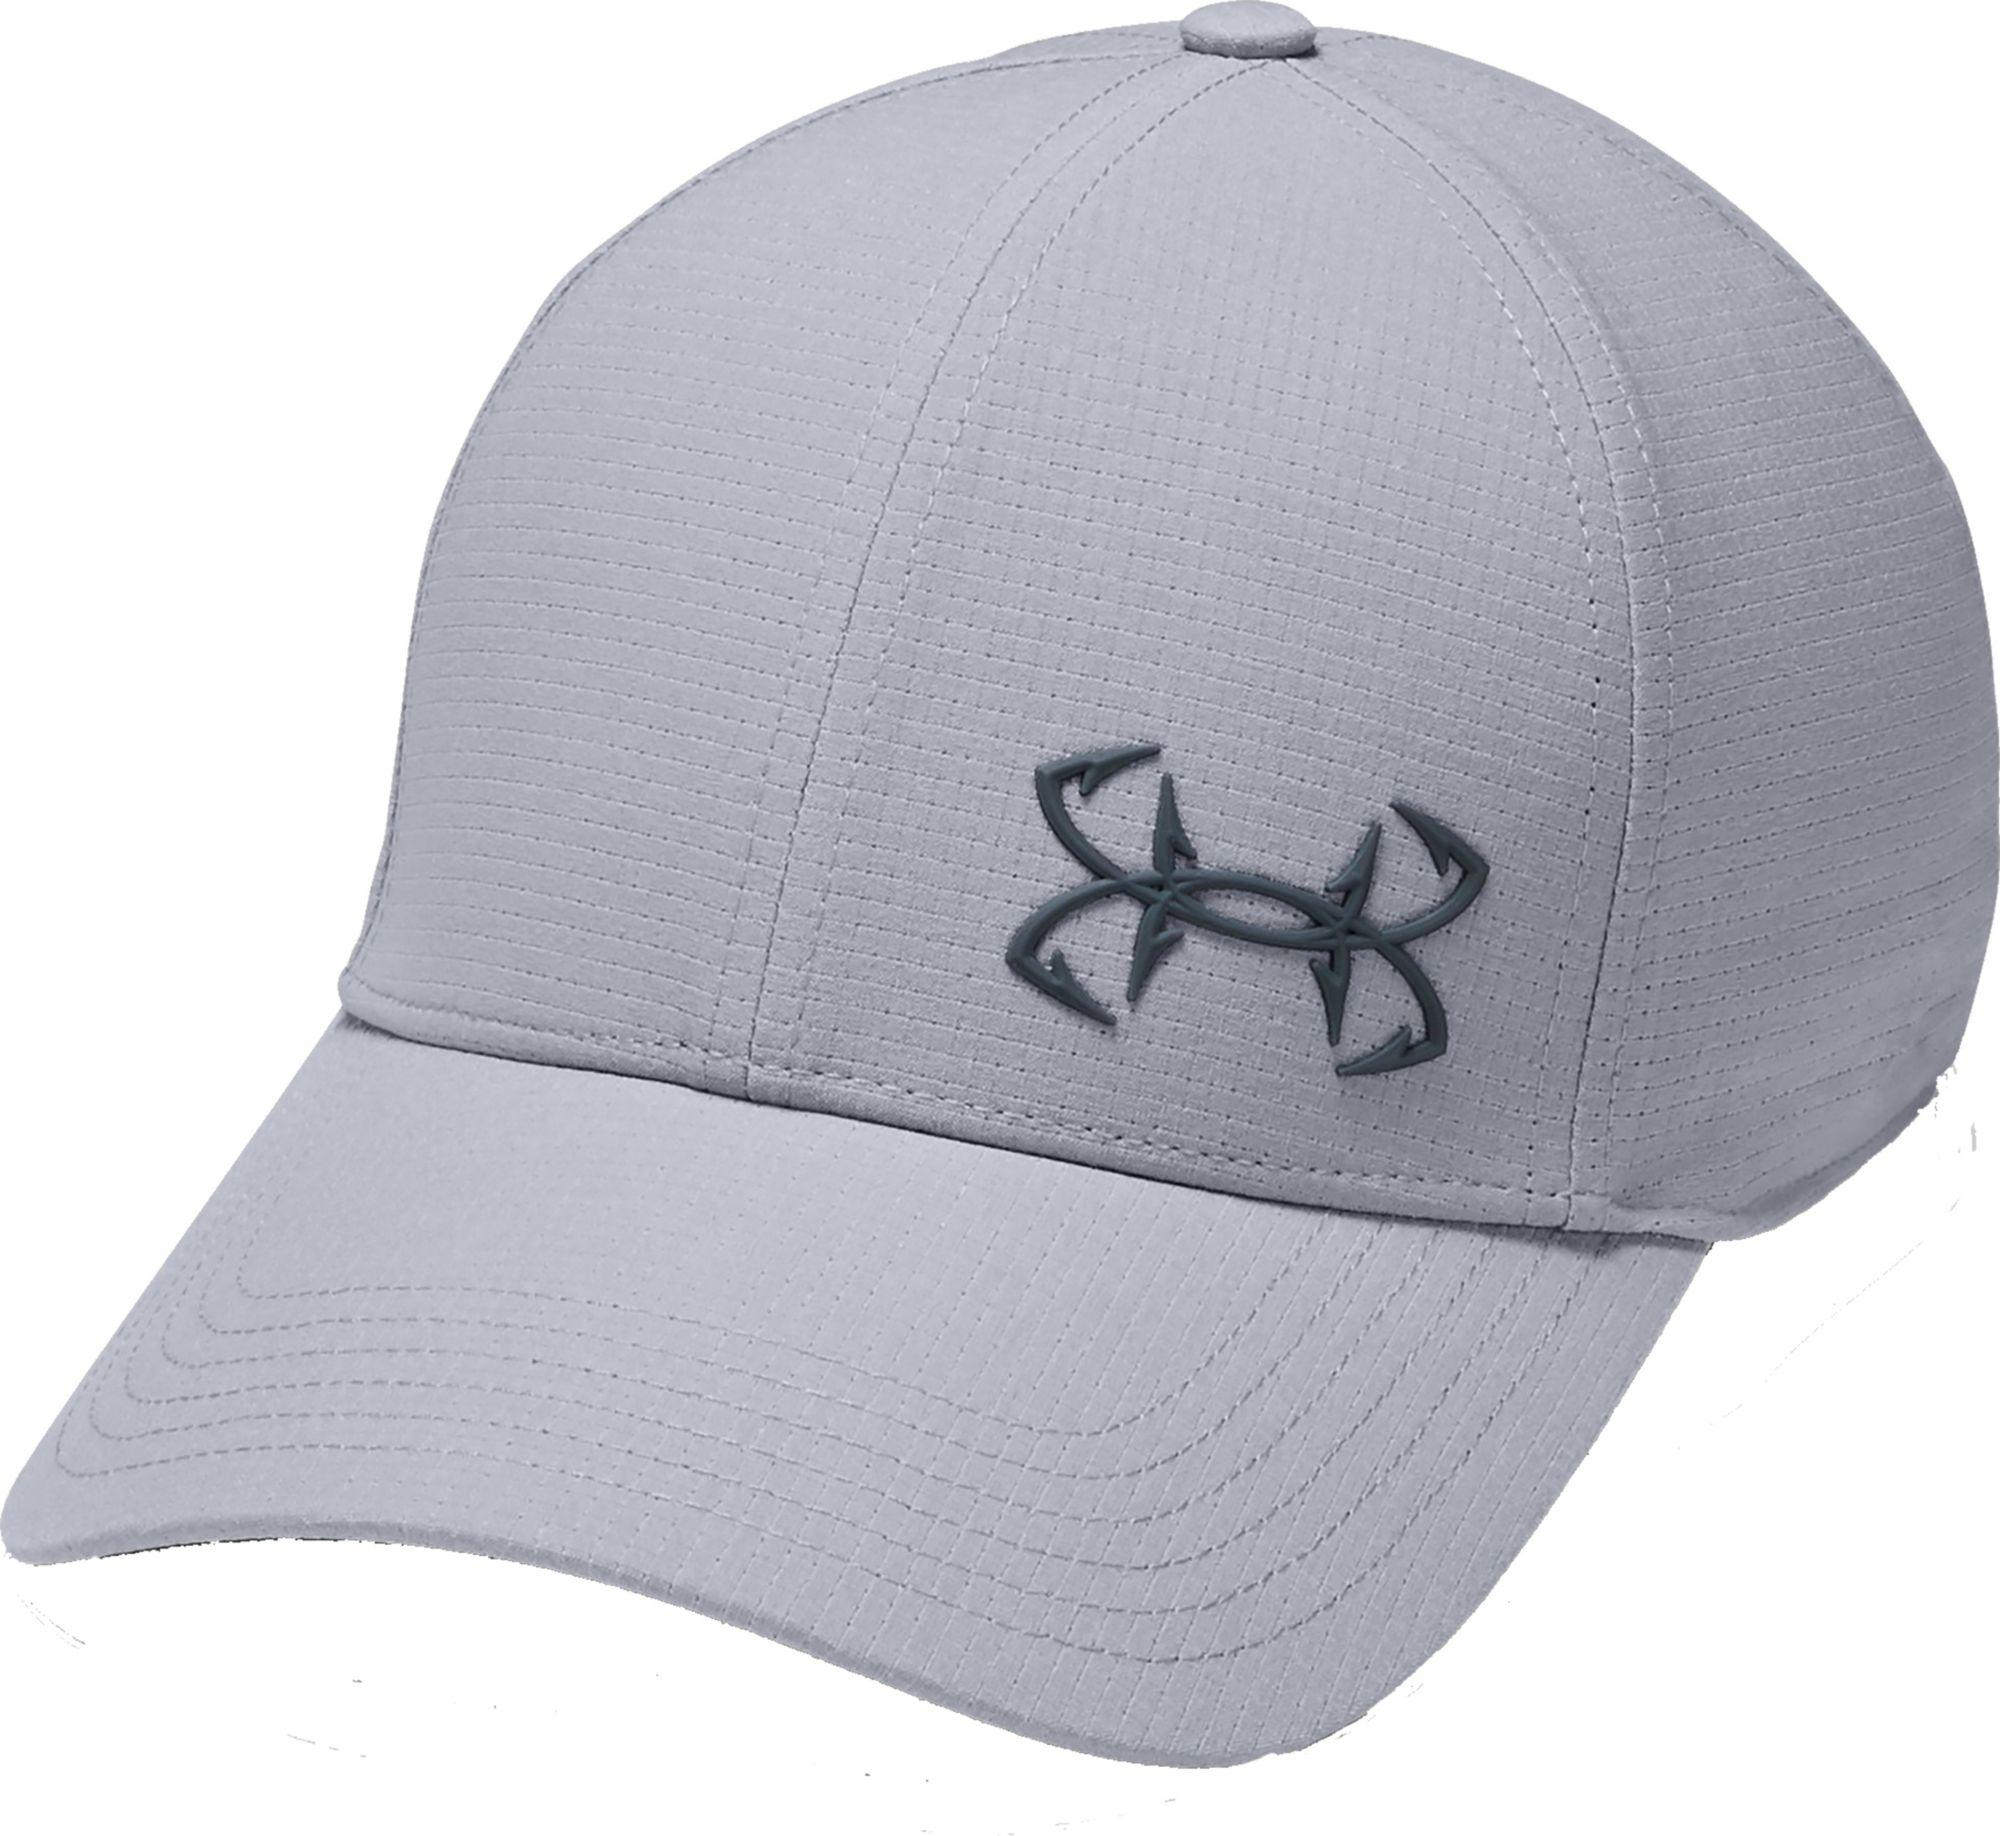 a6e2692da59 Lyst - Under Armour Coolswitch Armourvent Fishing Hat in Gray for Men